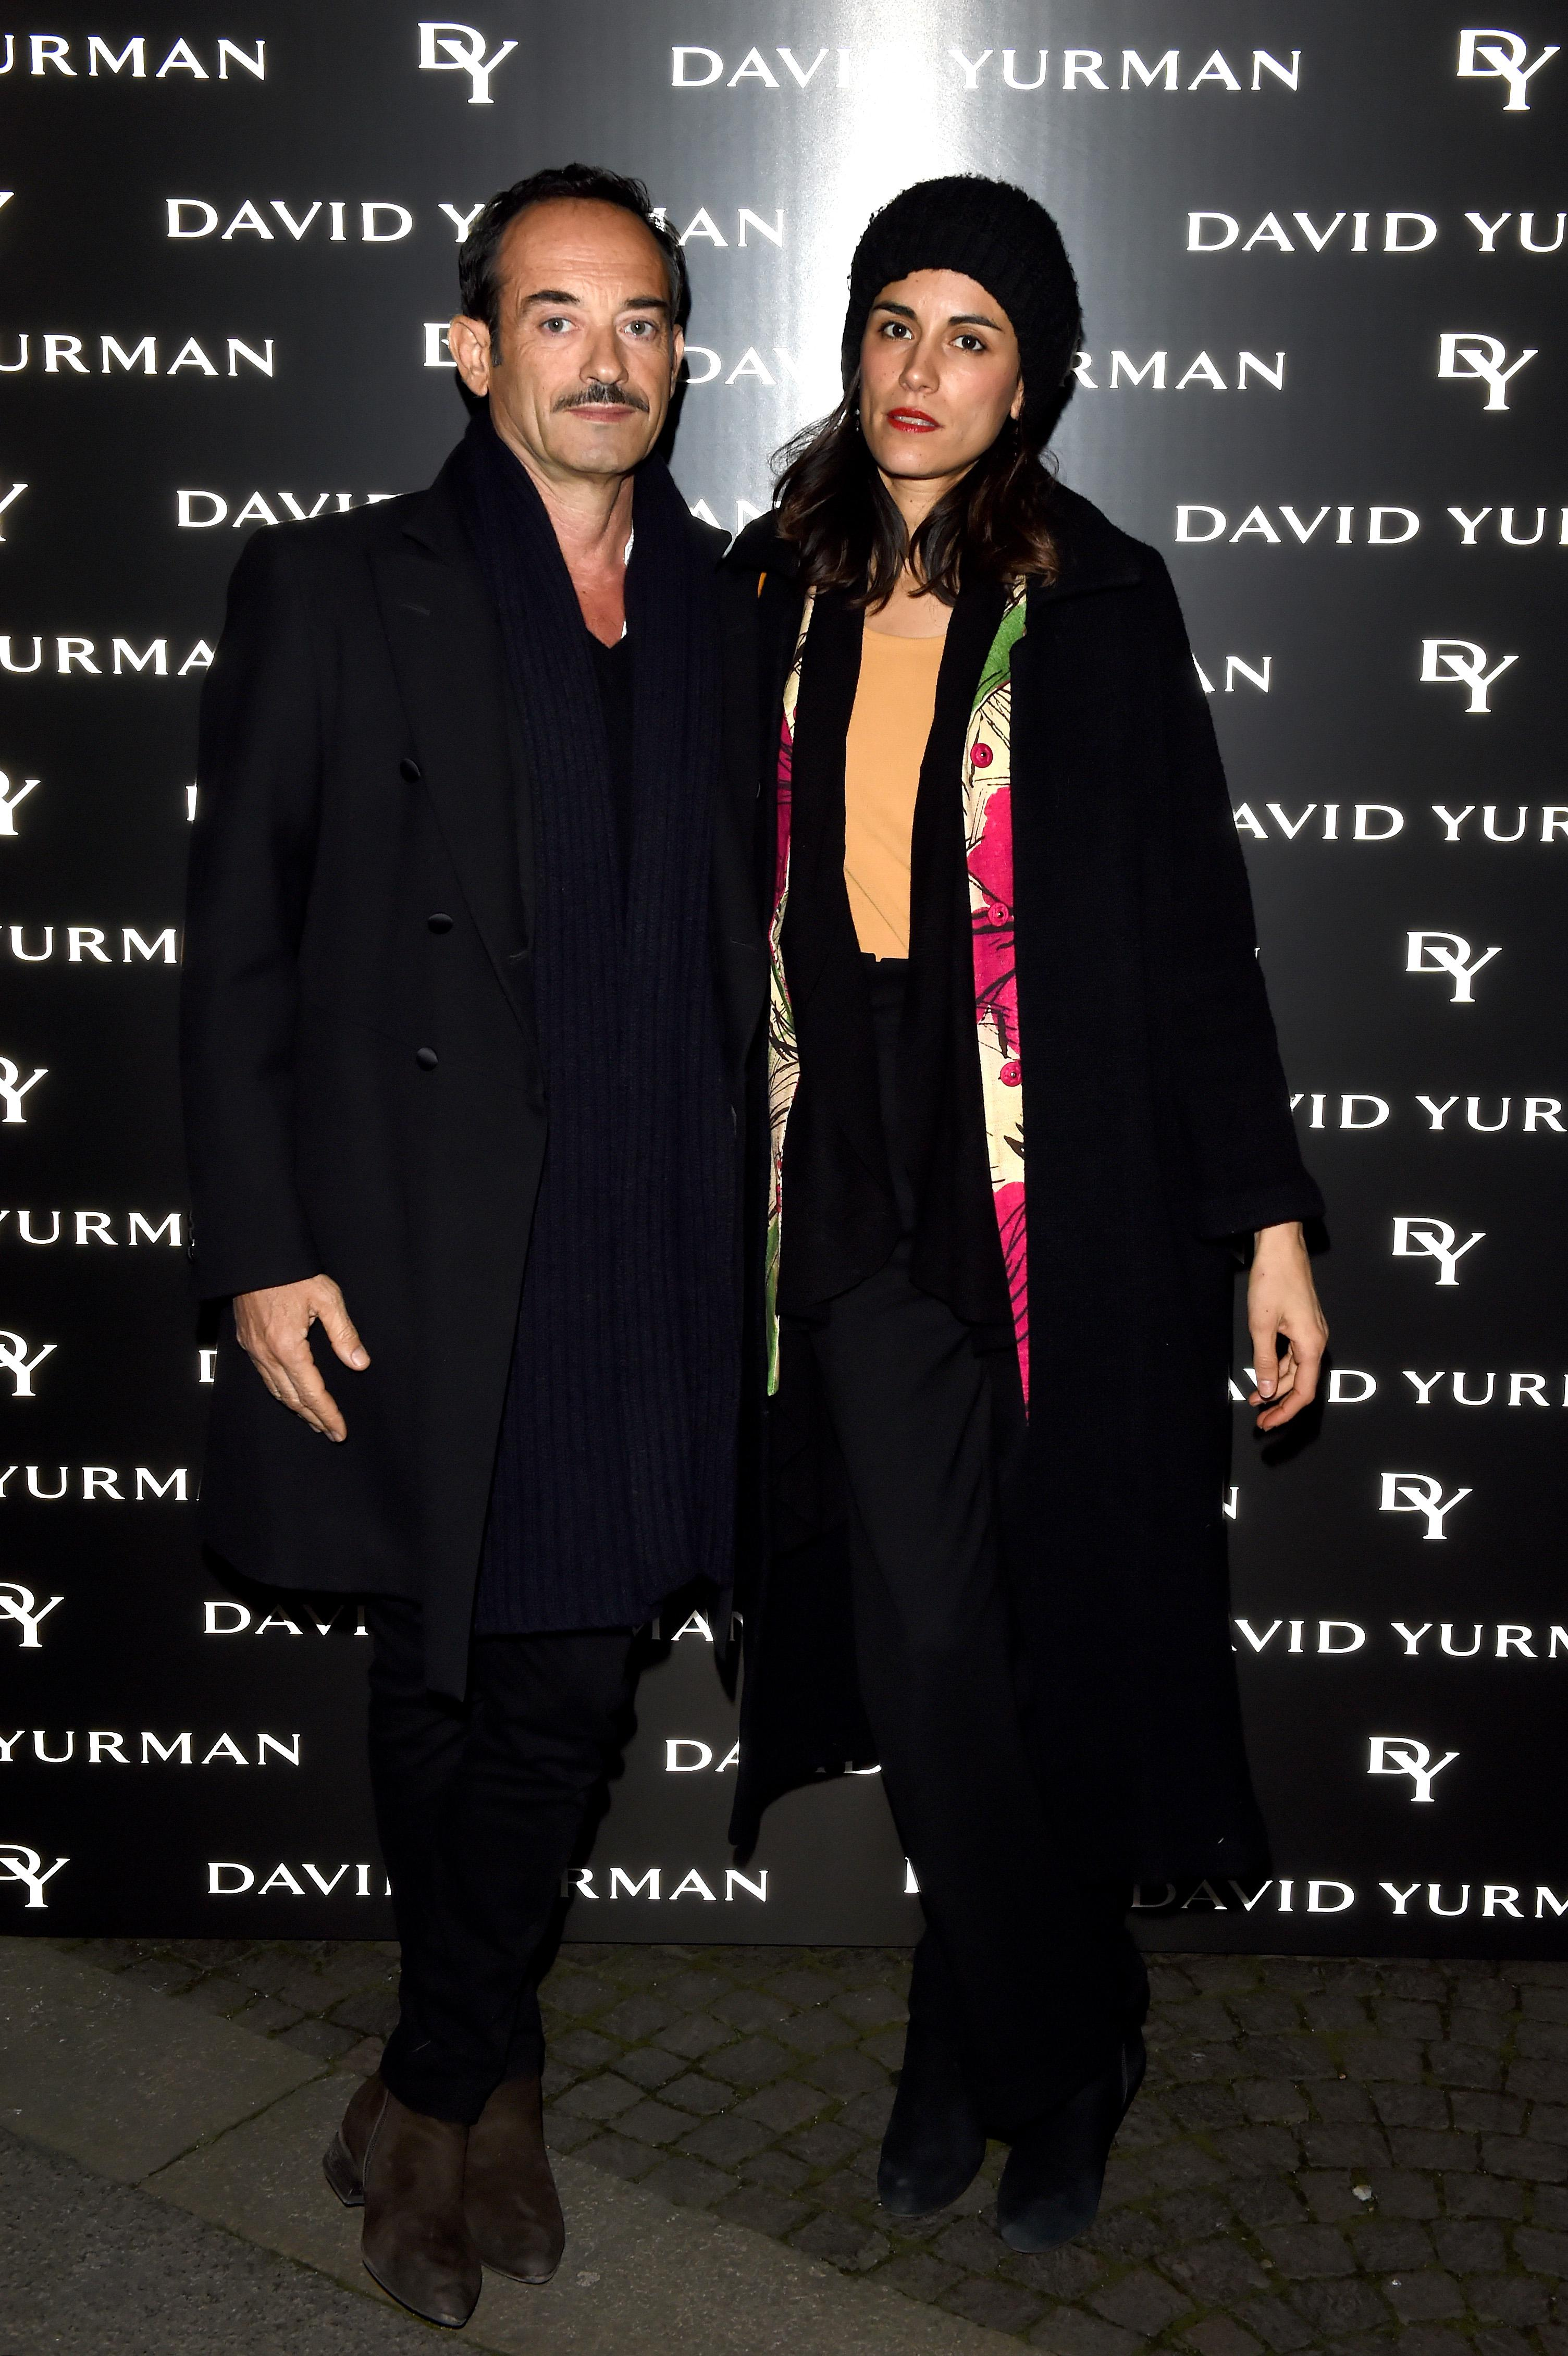 Where Design Meets Art – David Yurman Men's Collection Exhibition in Partnership with Anthony James